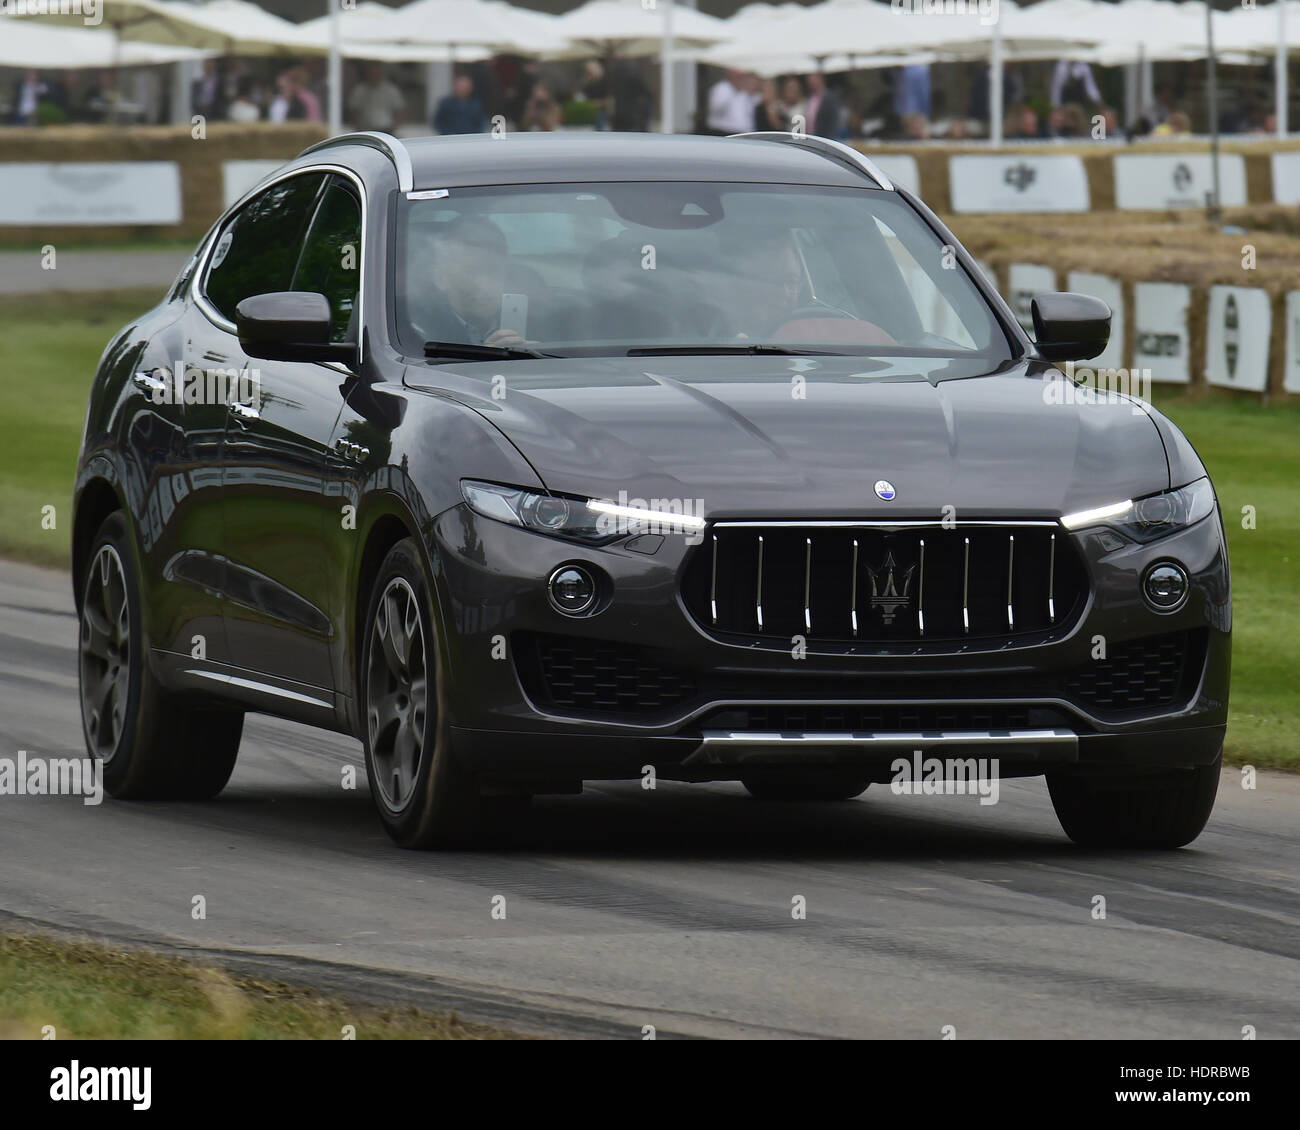 Maserati Levante, Goodwood Festival of Speed, 2016. automobiles, cars, entertainment, Festival of Speed, FoS, Full - Stock Image